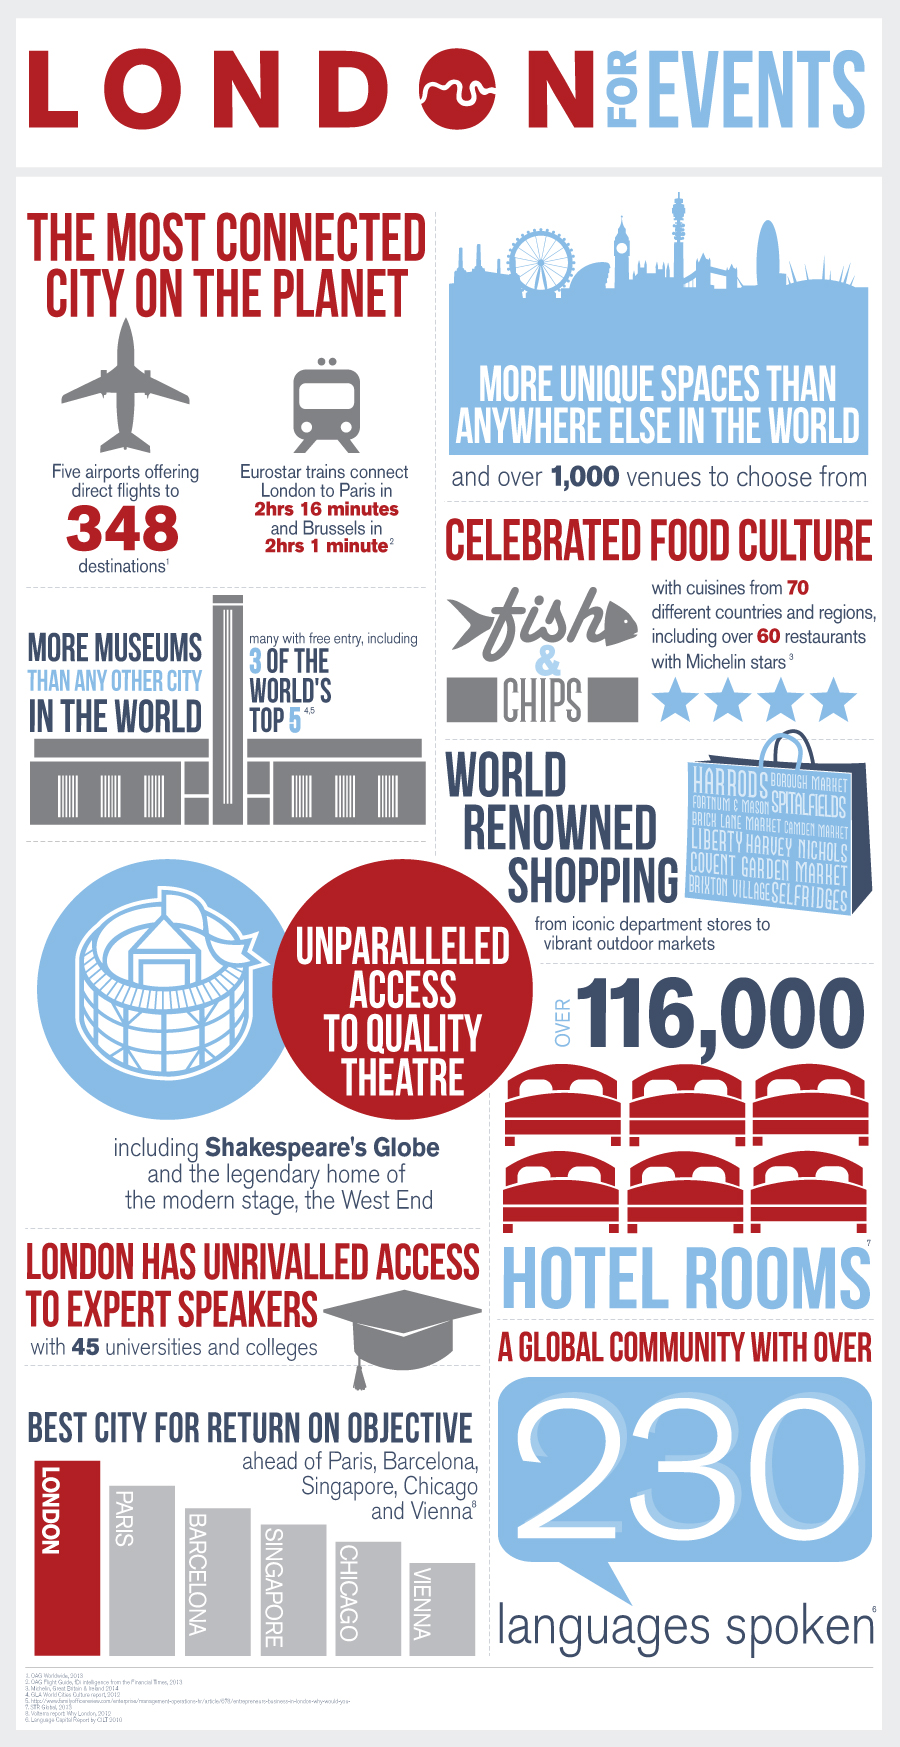 Why London for events?